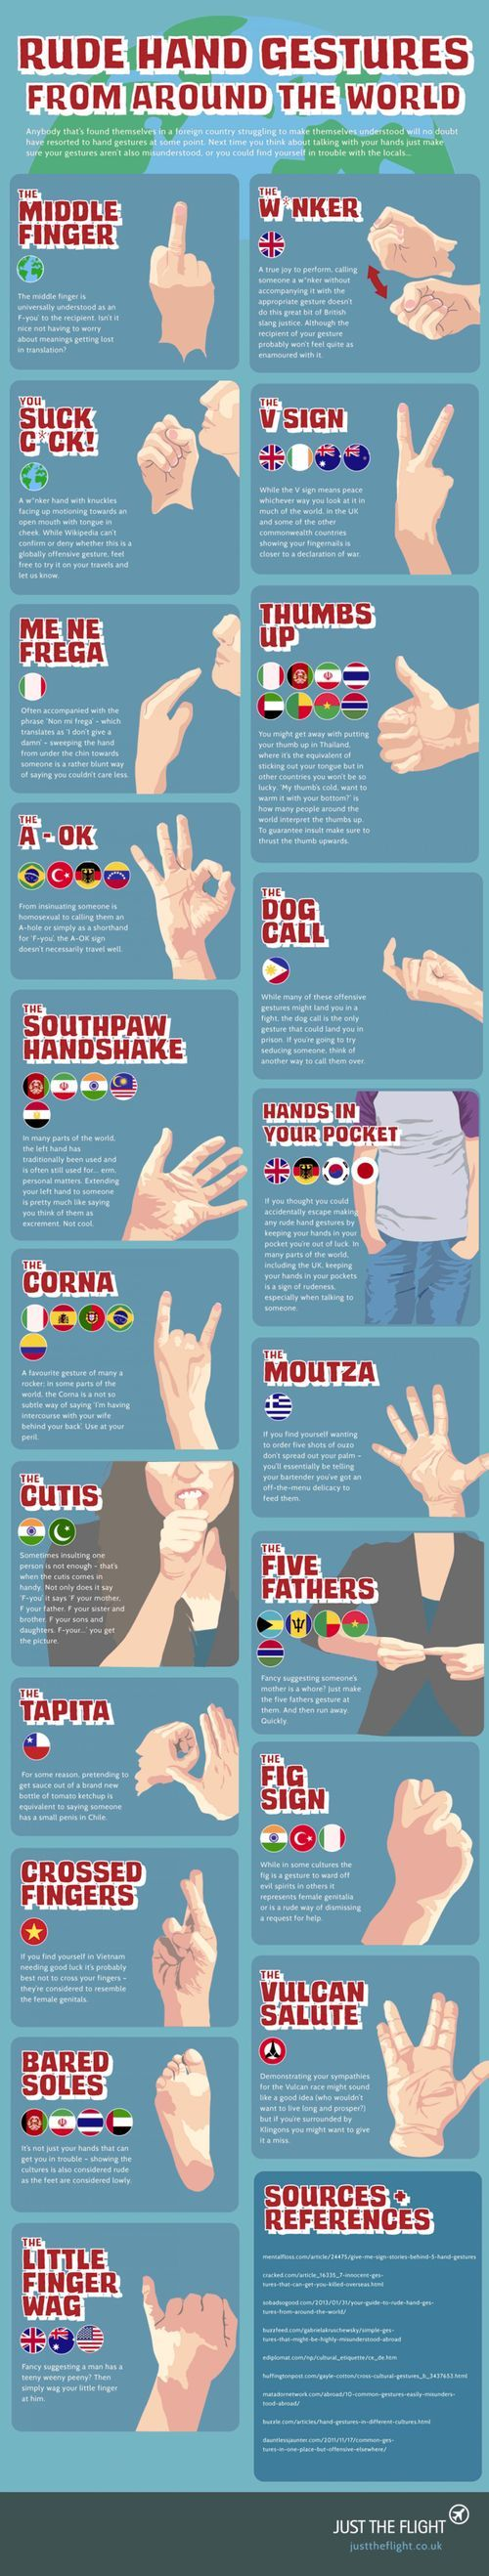 Offensive Hand Gestures From Around The World on imgfave